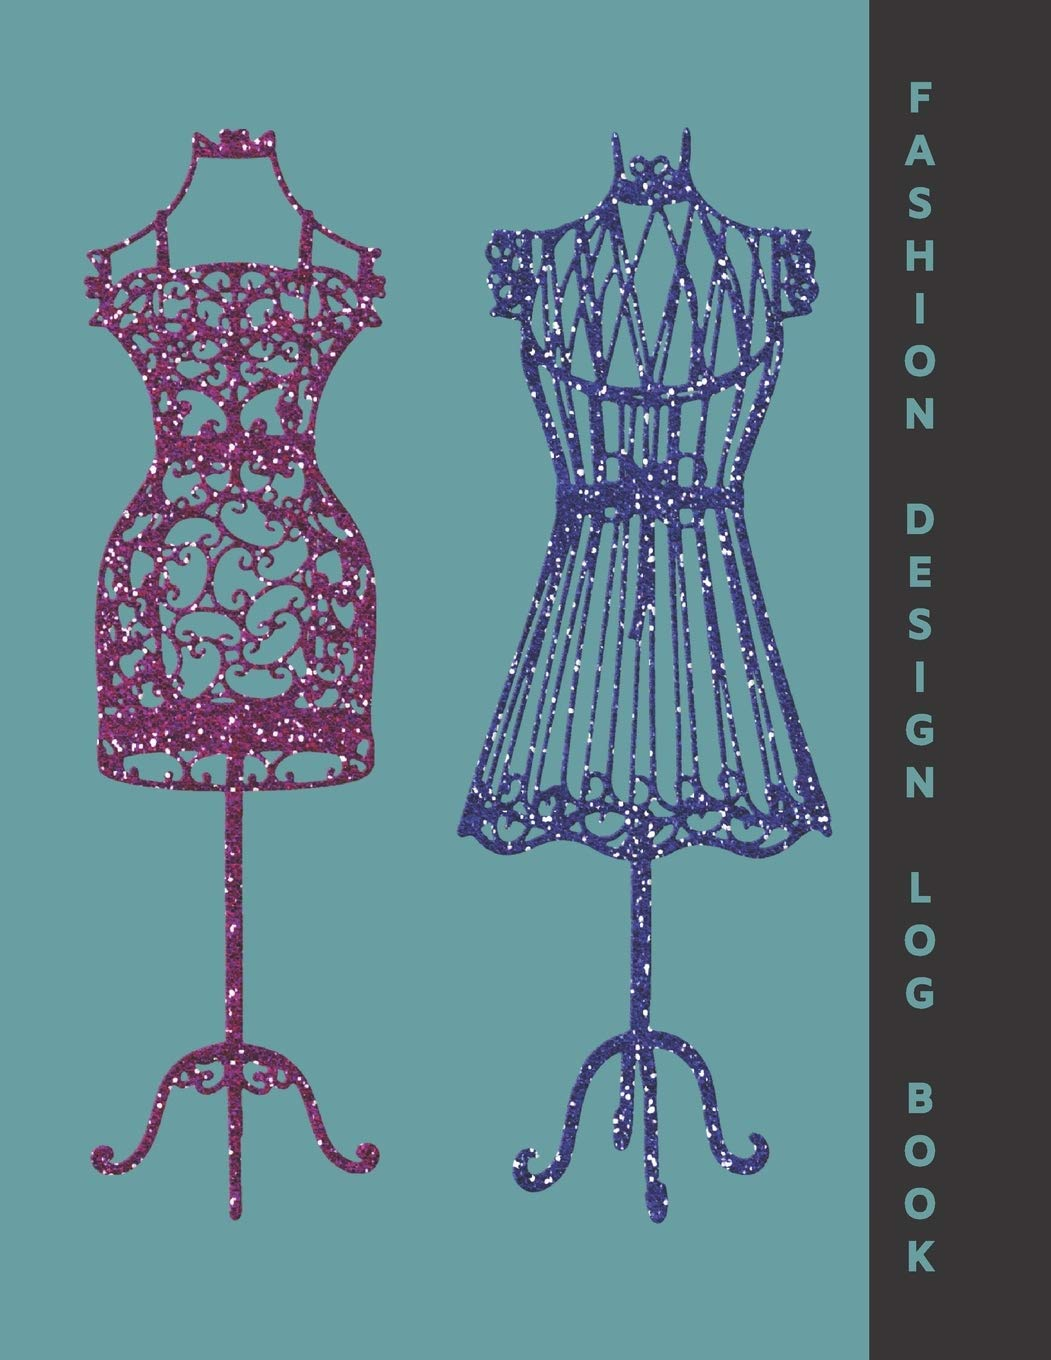 Fashion Design Log Book With Female Model Template Cute Cover With Sparkly Dress Forms Ideal Gift For Fashion Design Students To Sketch And Plan Out Their Ideas Sunnyside Log Books 9781711133874